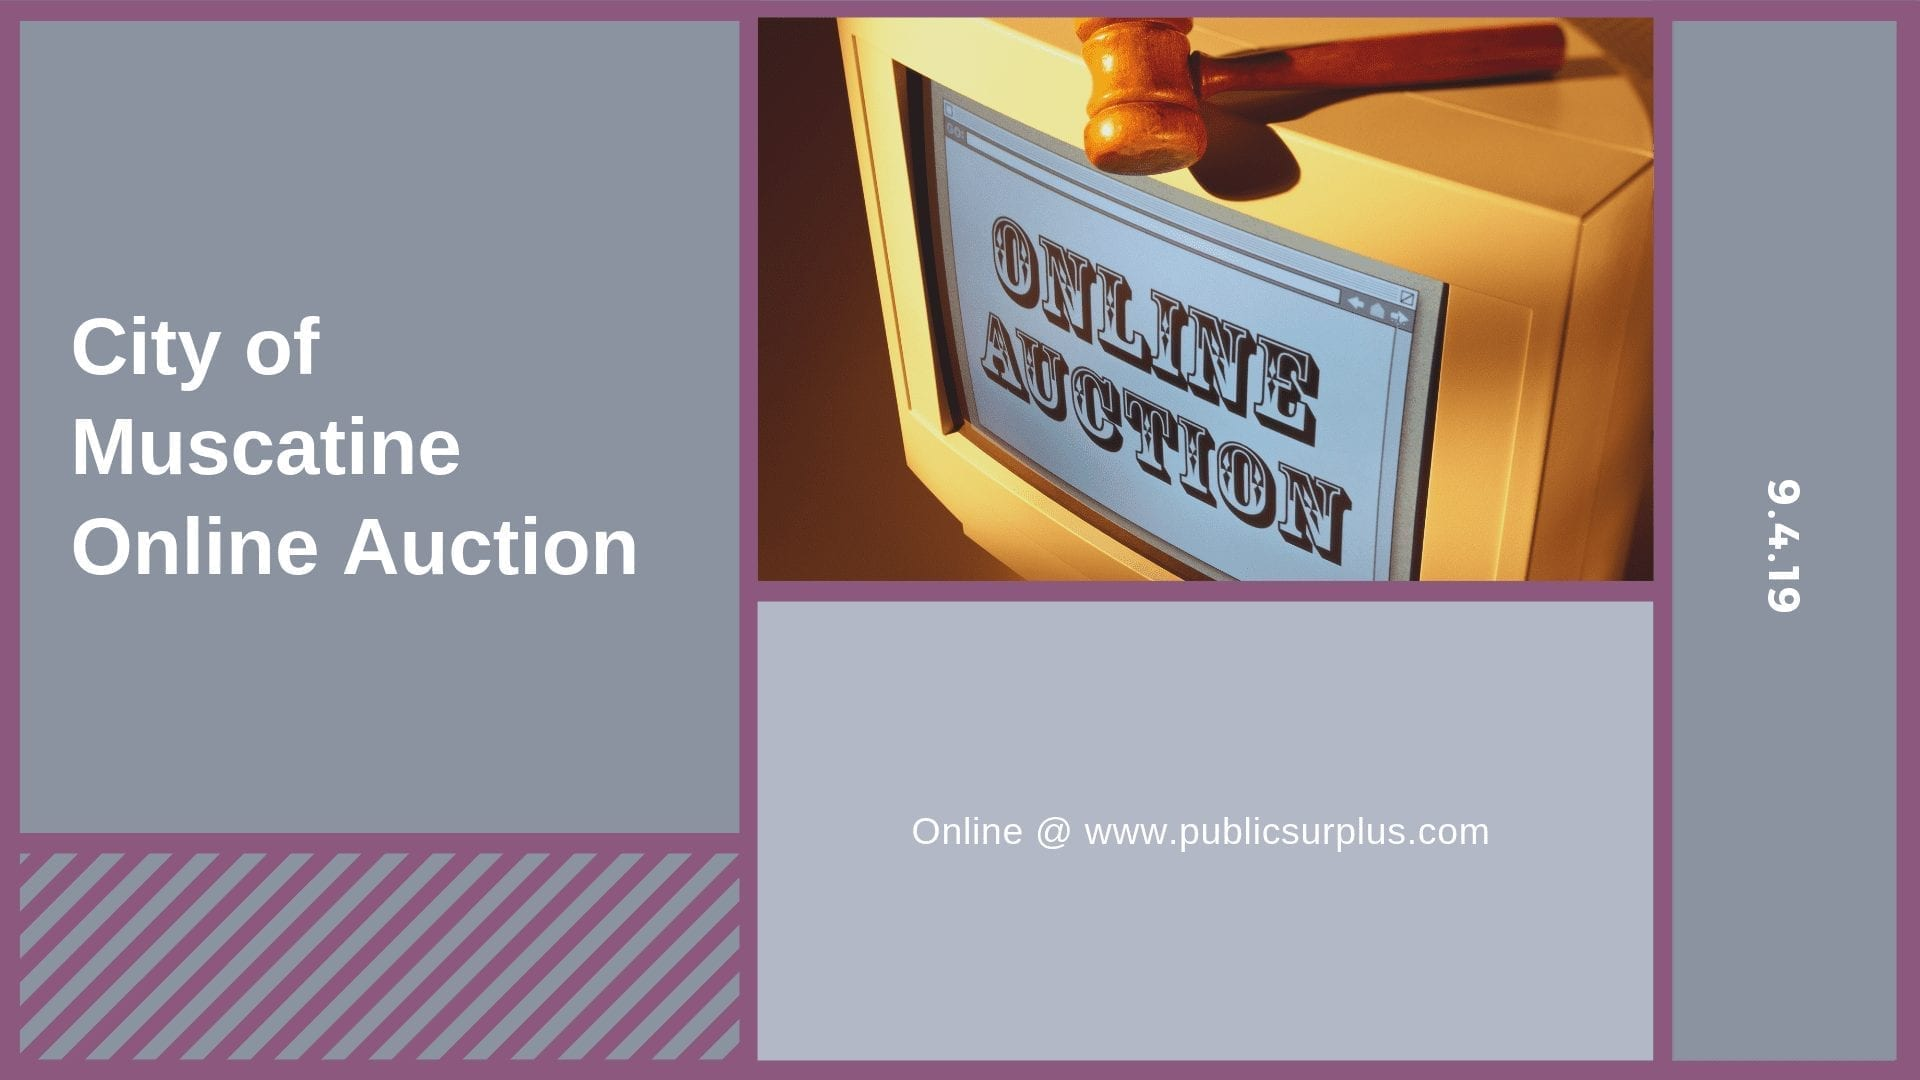 City of Muscatine Online Auction